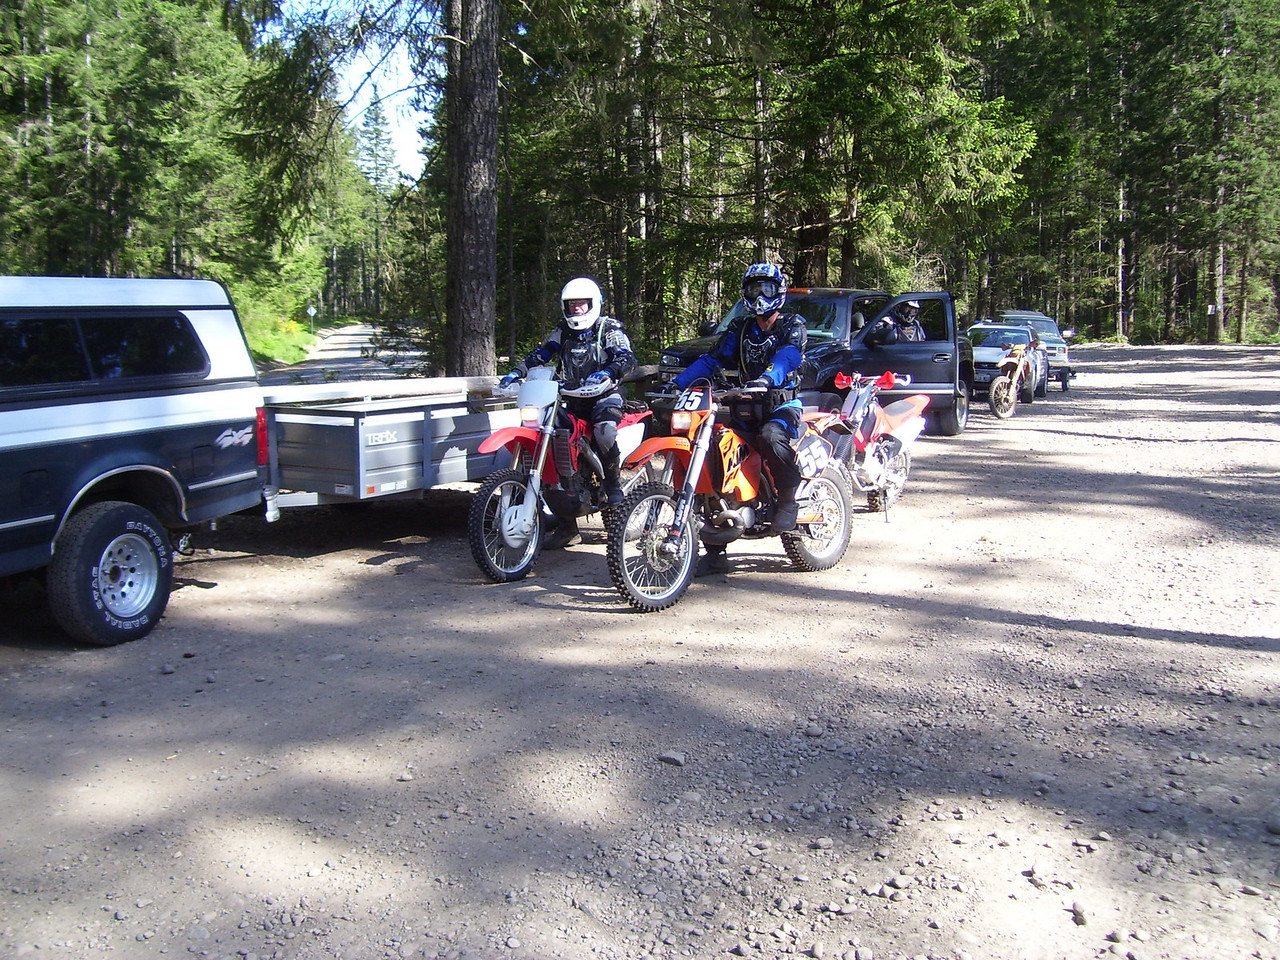 Getting ready to go for last Saturday's trail ride